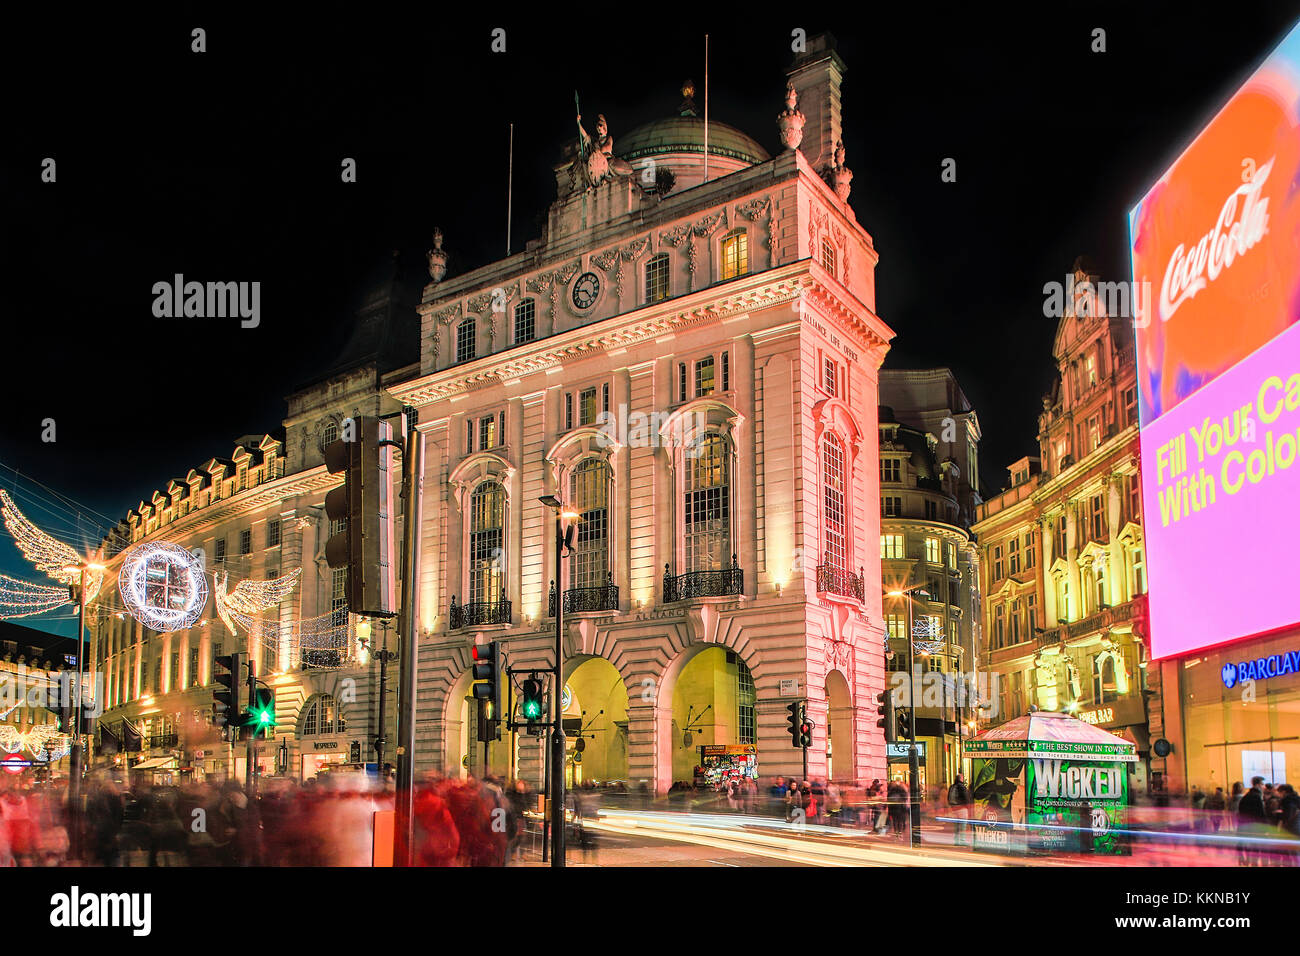 London, Christmas lights on Piccadilly circus and Regent Street - Stock Image